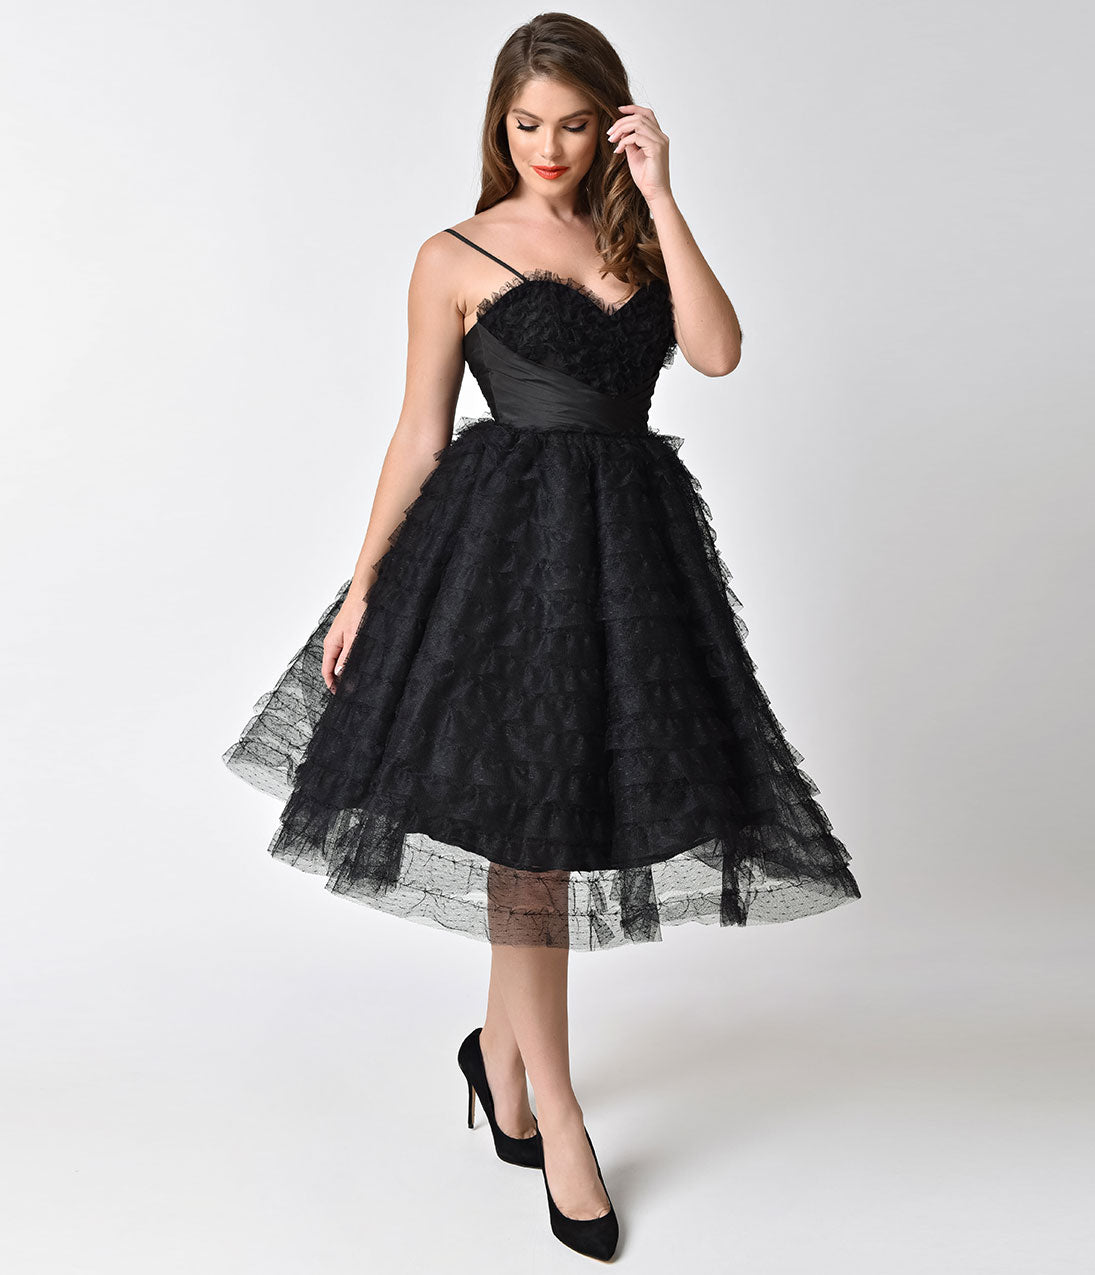 1950s Dresses, 50s Dresses | 1950s Style Dresses Unique Vintage 1950S Black Ruffled Tulle Sweetheart Cupcake Swing Dress $128.00 AT vintagedancer.com